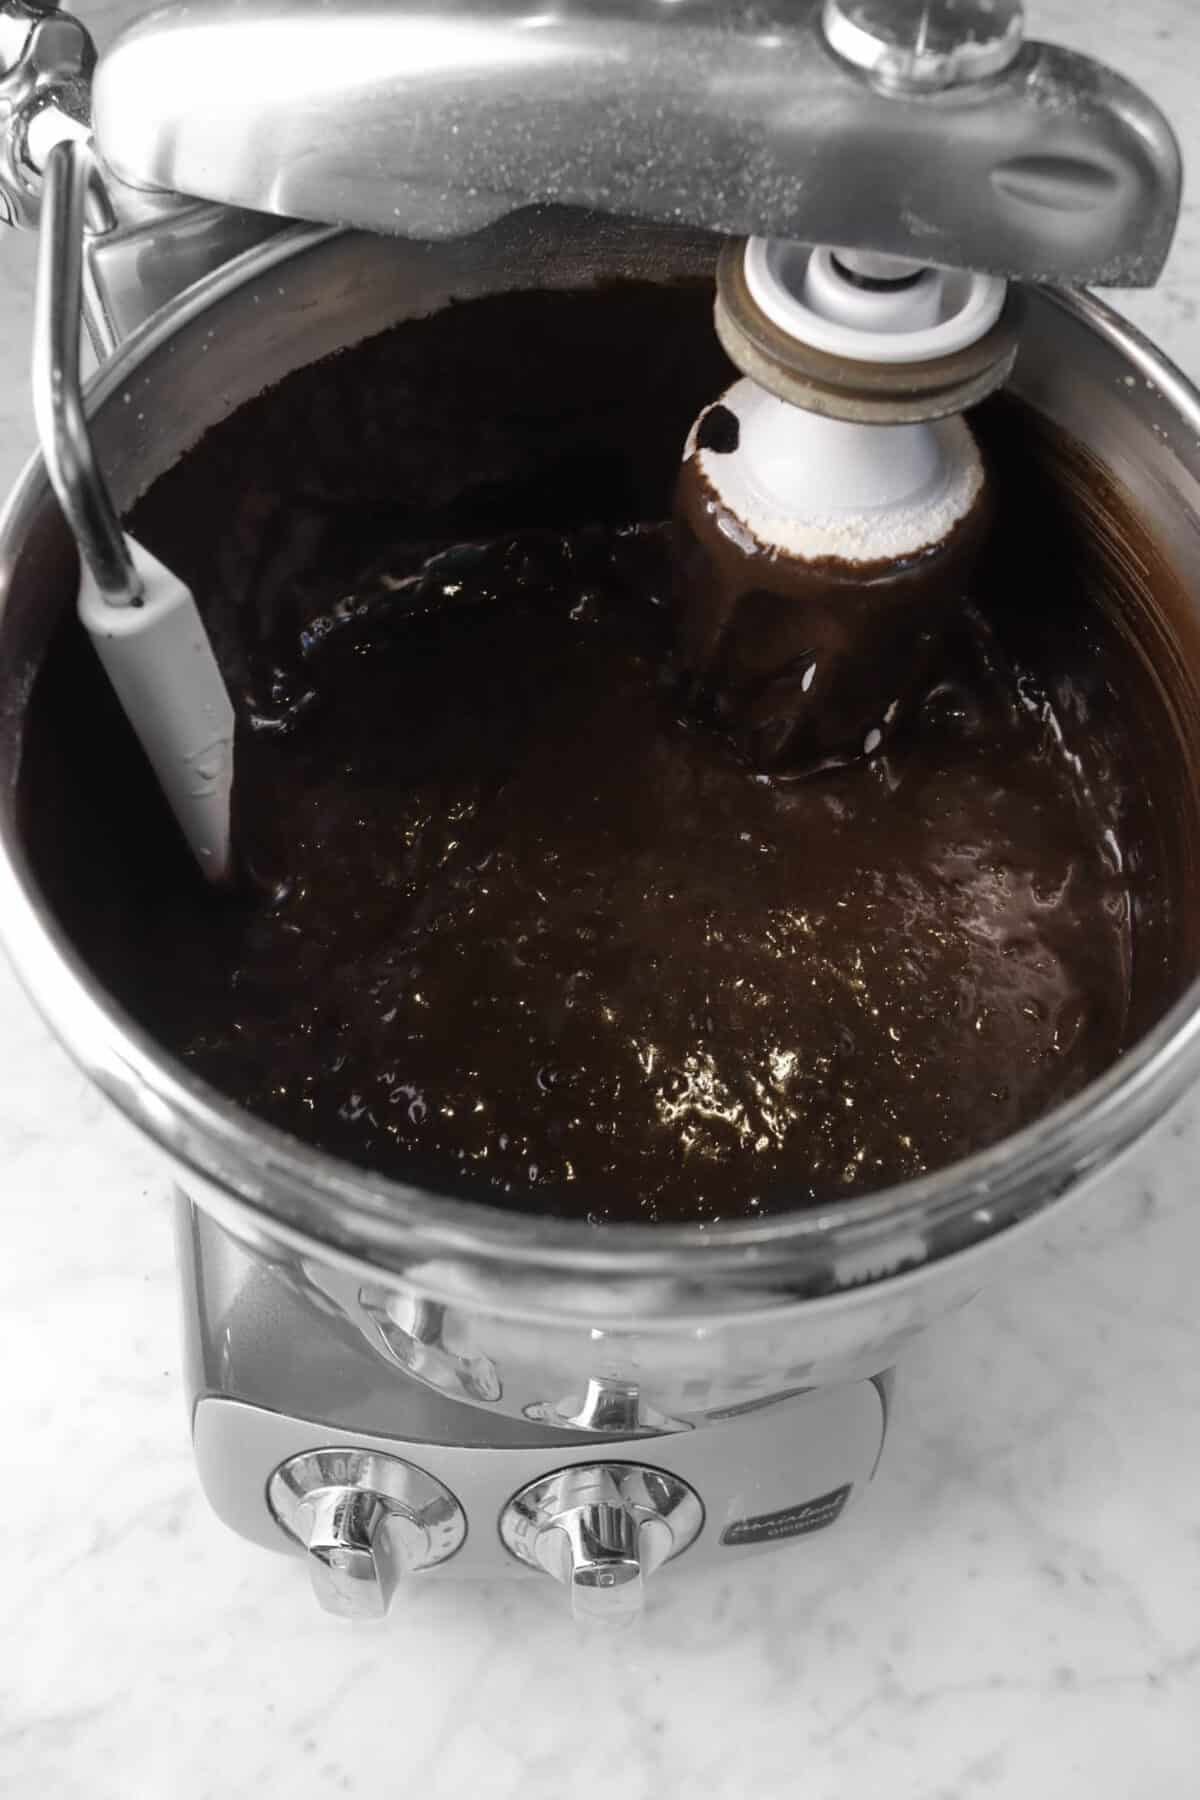 flour mixed into brownie batter in a mixer bowl